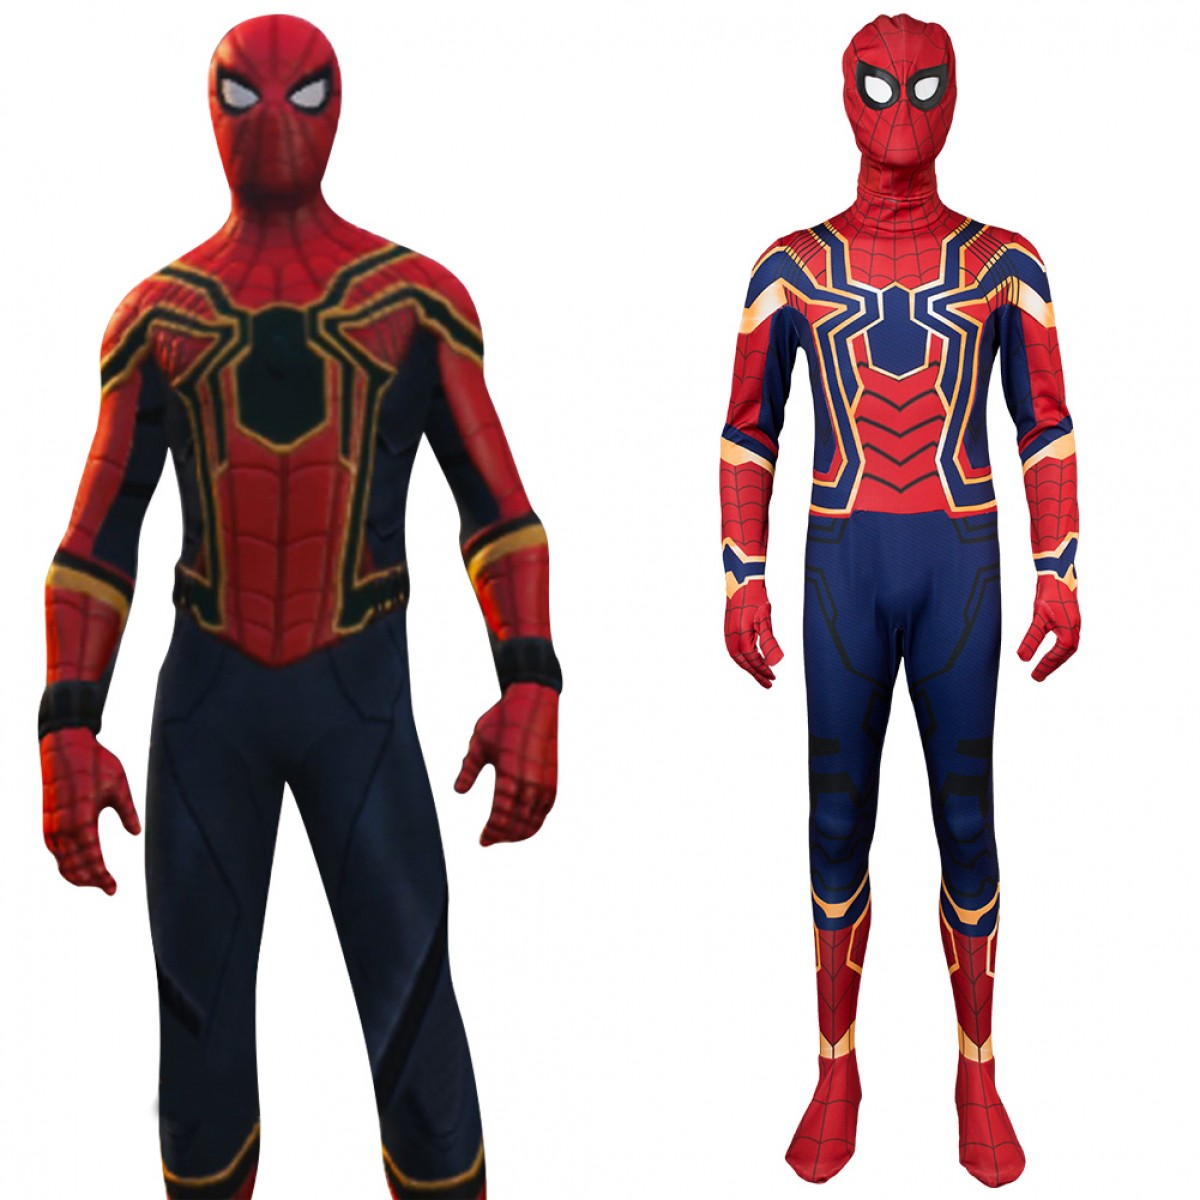 Spider SpiderMan Outfit Jumpsuit Cosplay Costume